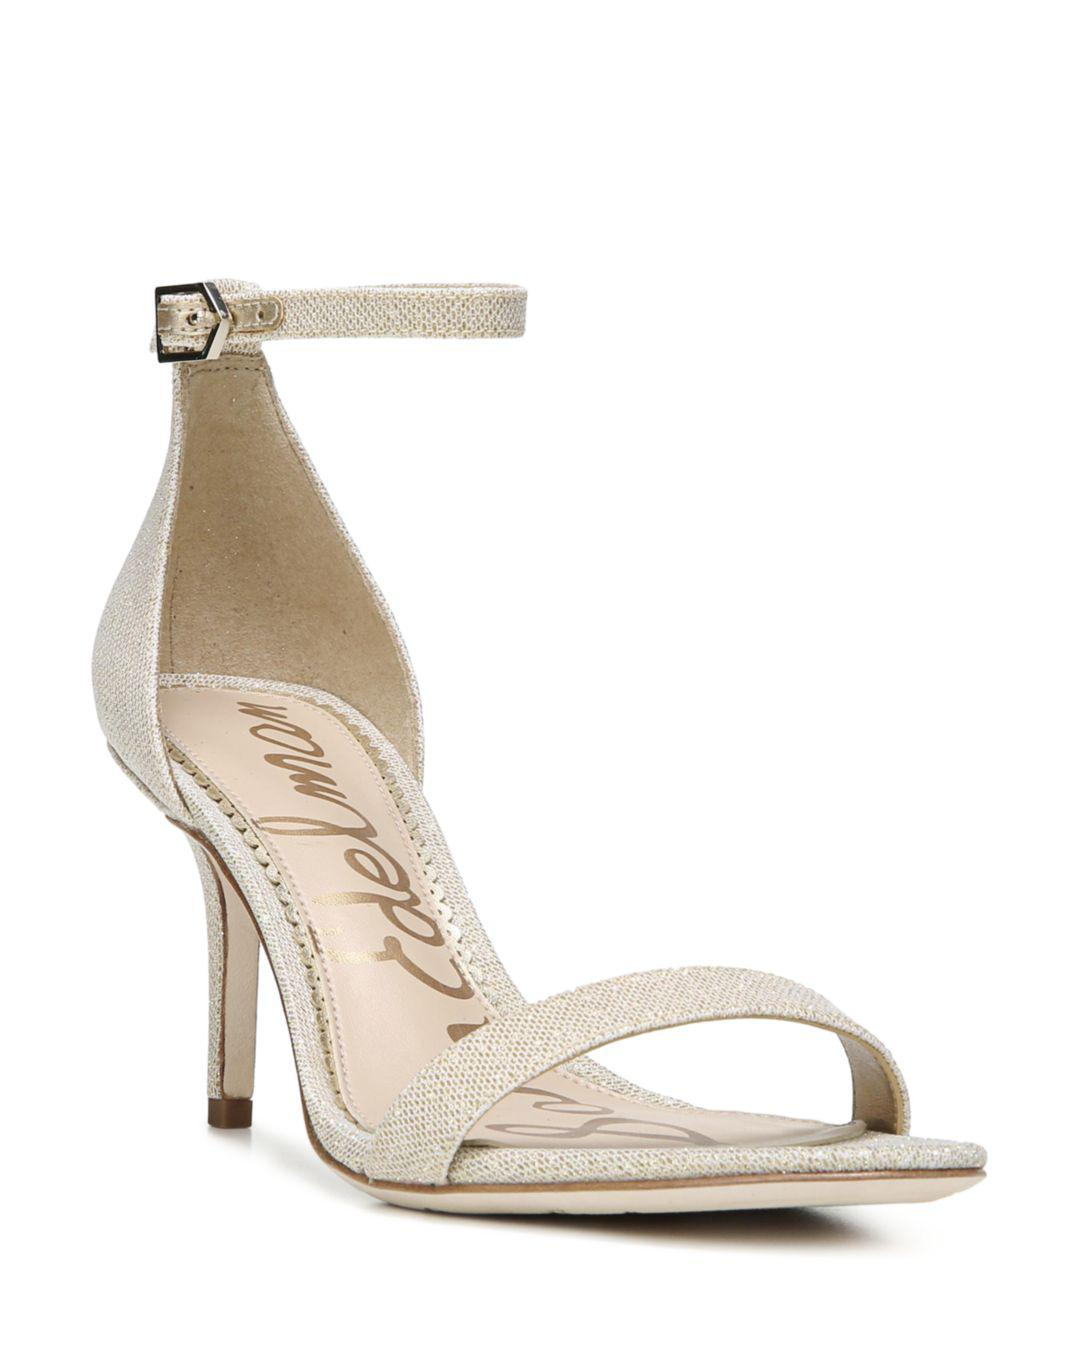 ca7044c45 Lyst - Sam Edelman Patti Ankle Strap Sandals in Natural - Save 33%